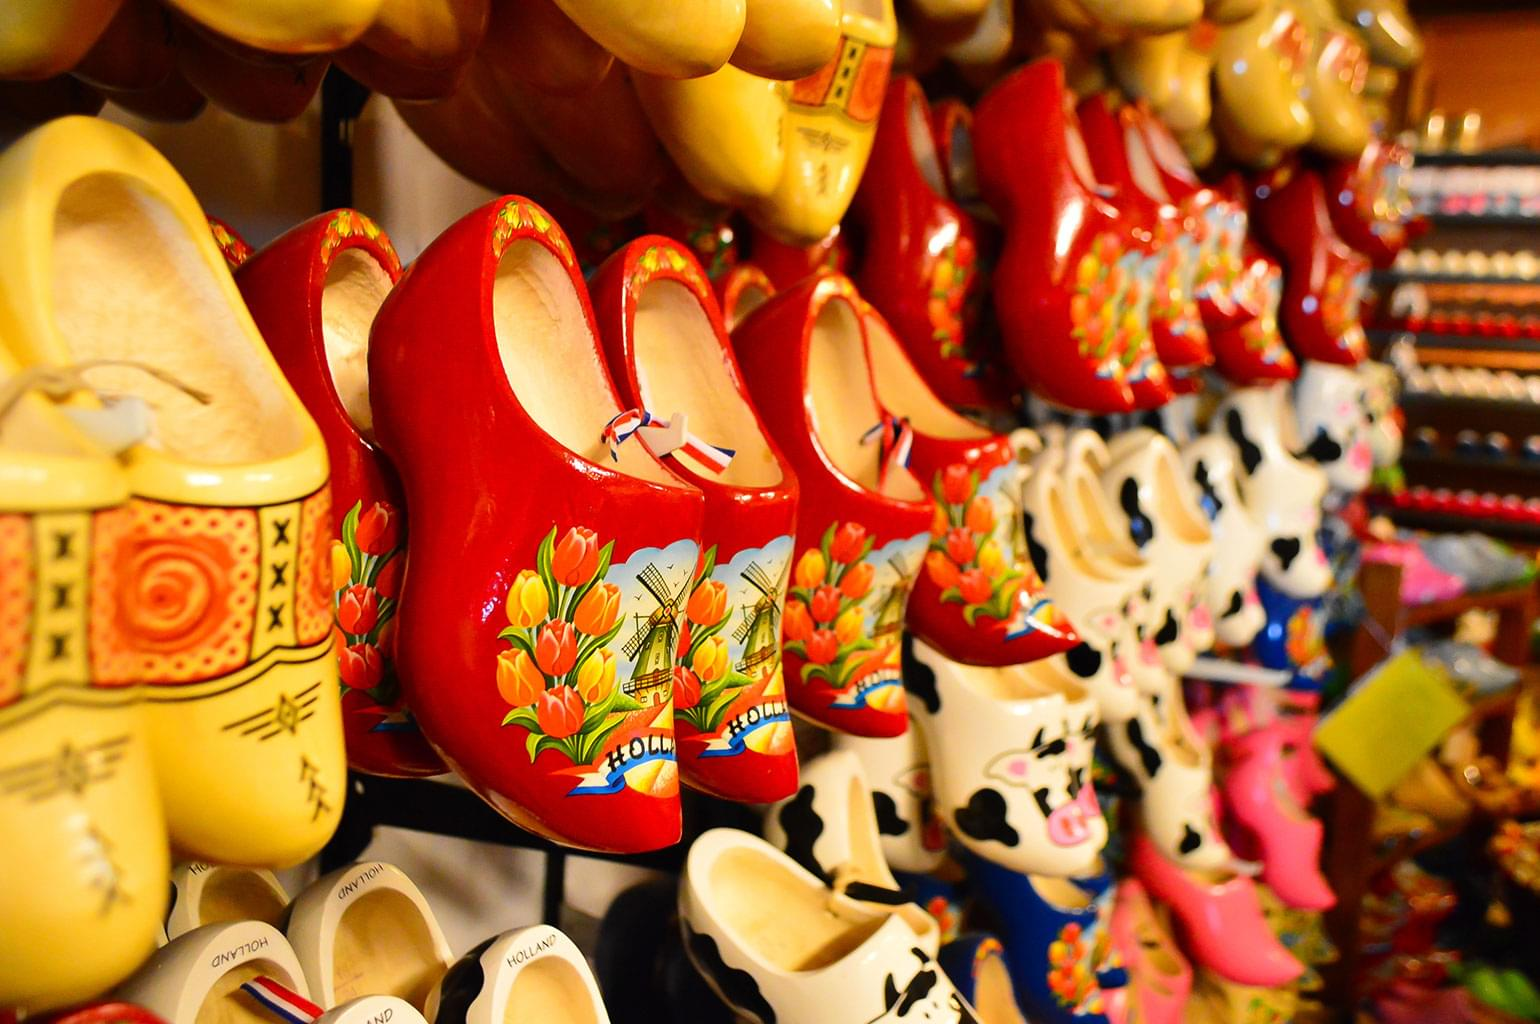 Rows of Dutch painted wooden shoes on display in a shop.